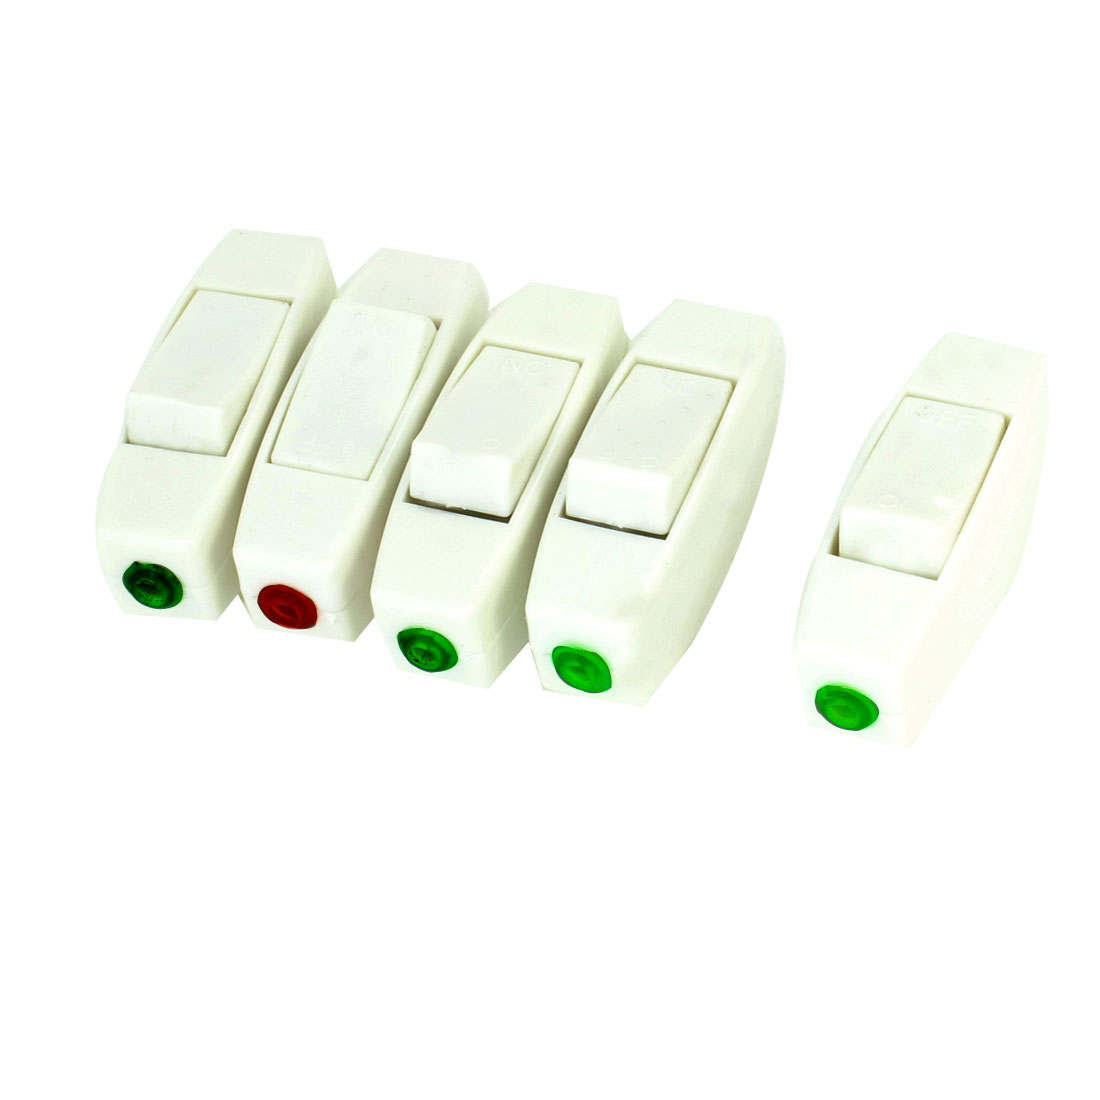 5 Pcs Home White Plastic 6A 250V Snap in SPST In-line Switch